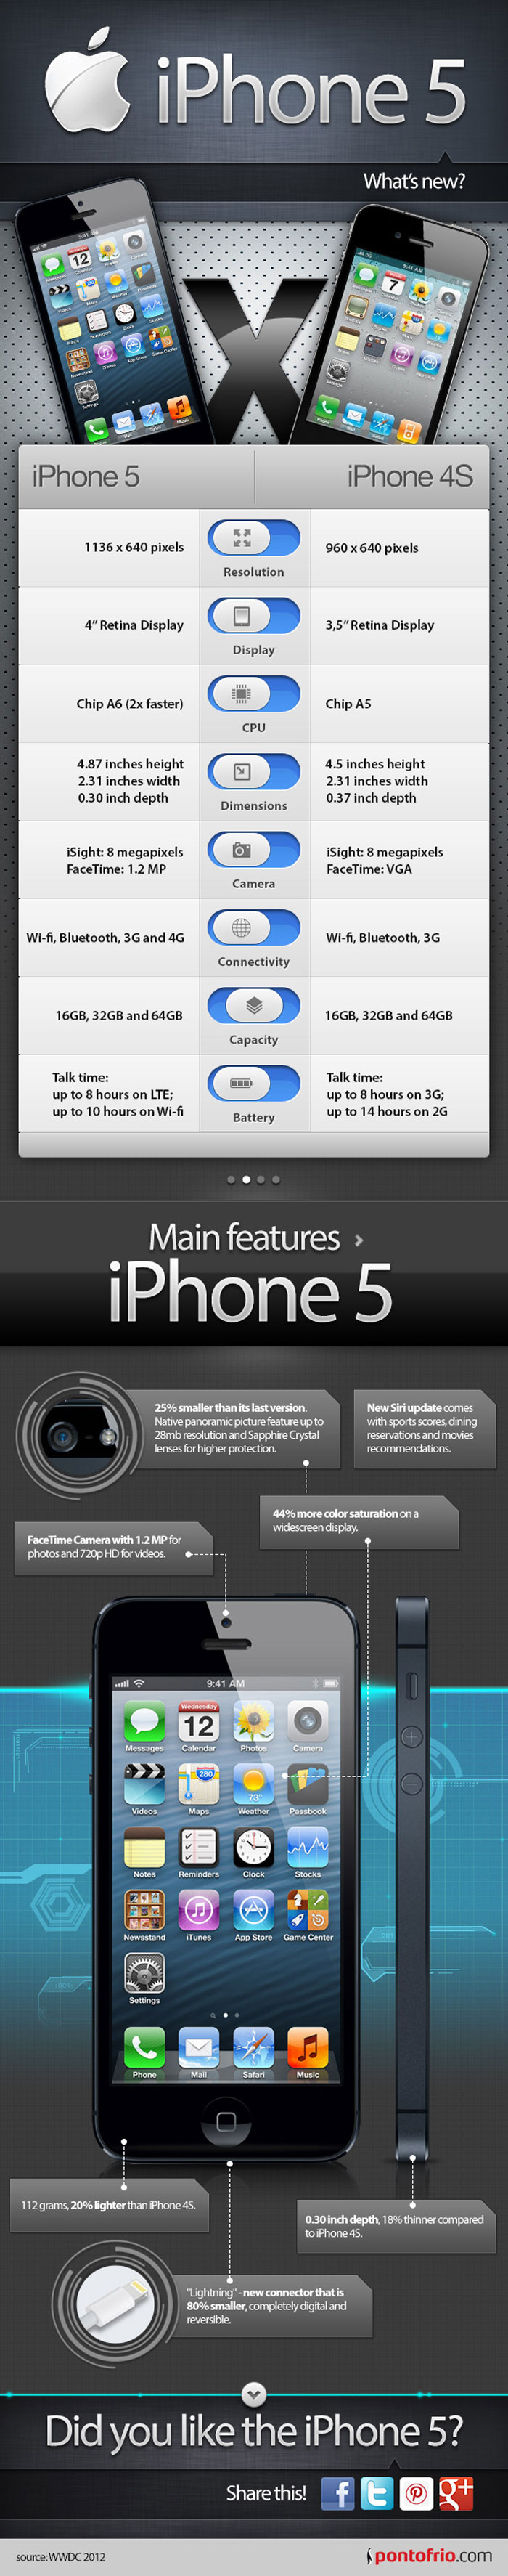 6. iPhone-5-Features-List-Infographic